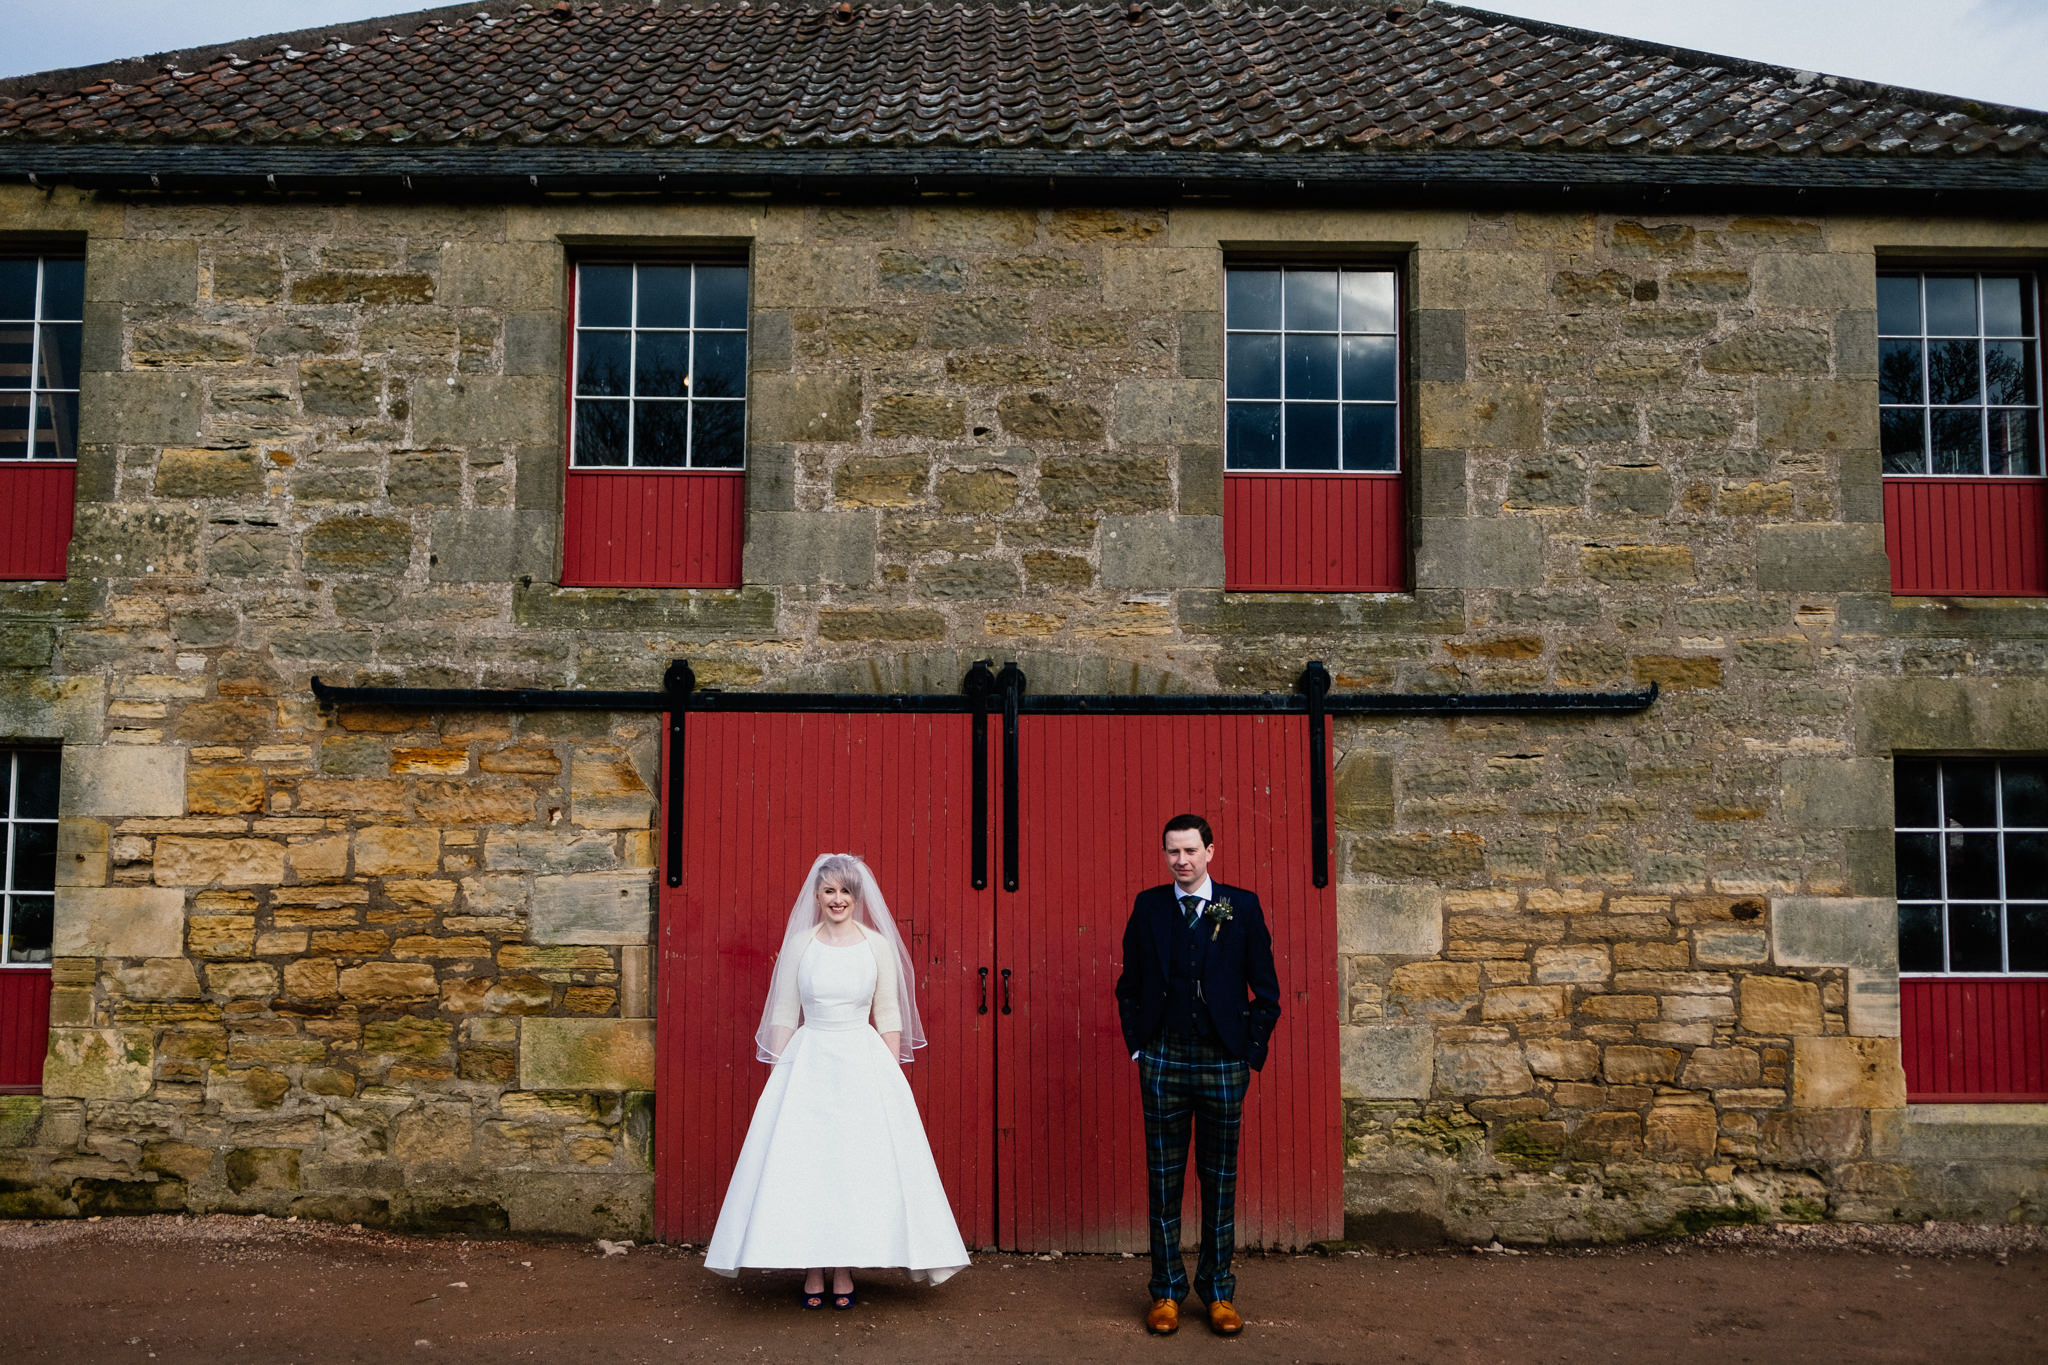 Fun Family Barn Wedding - Kinkell Byre_024.jpg